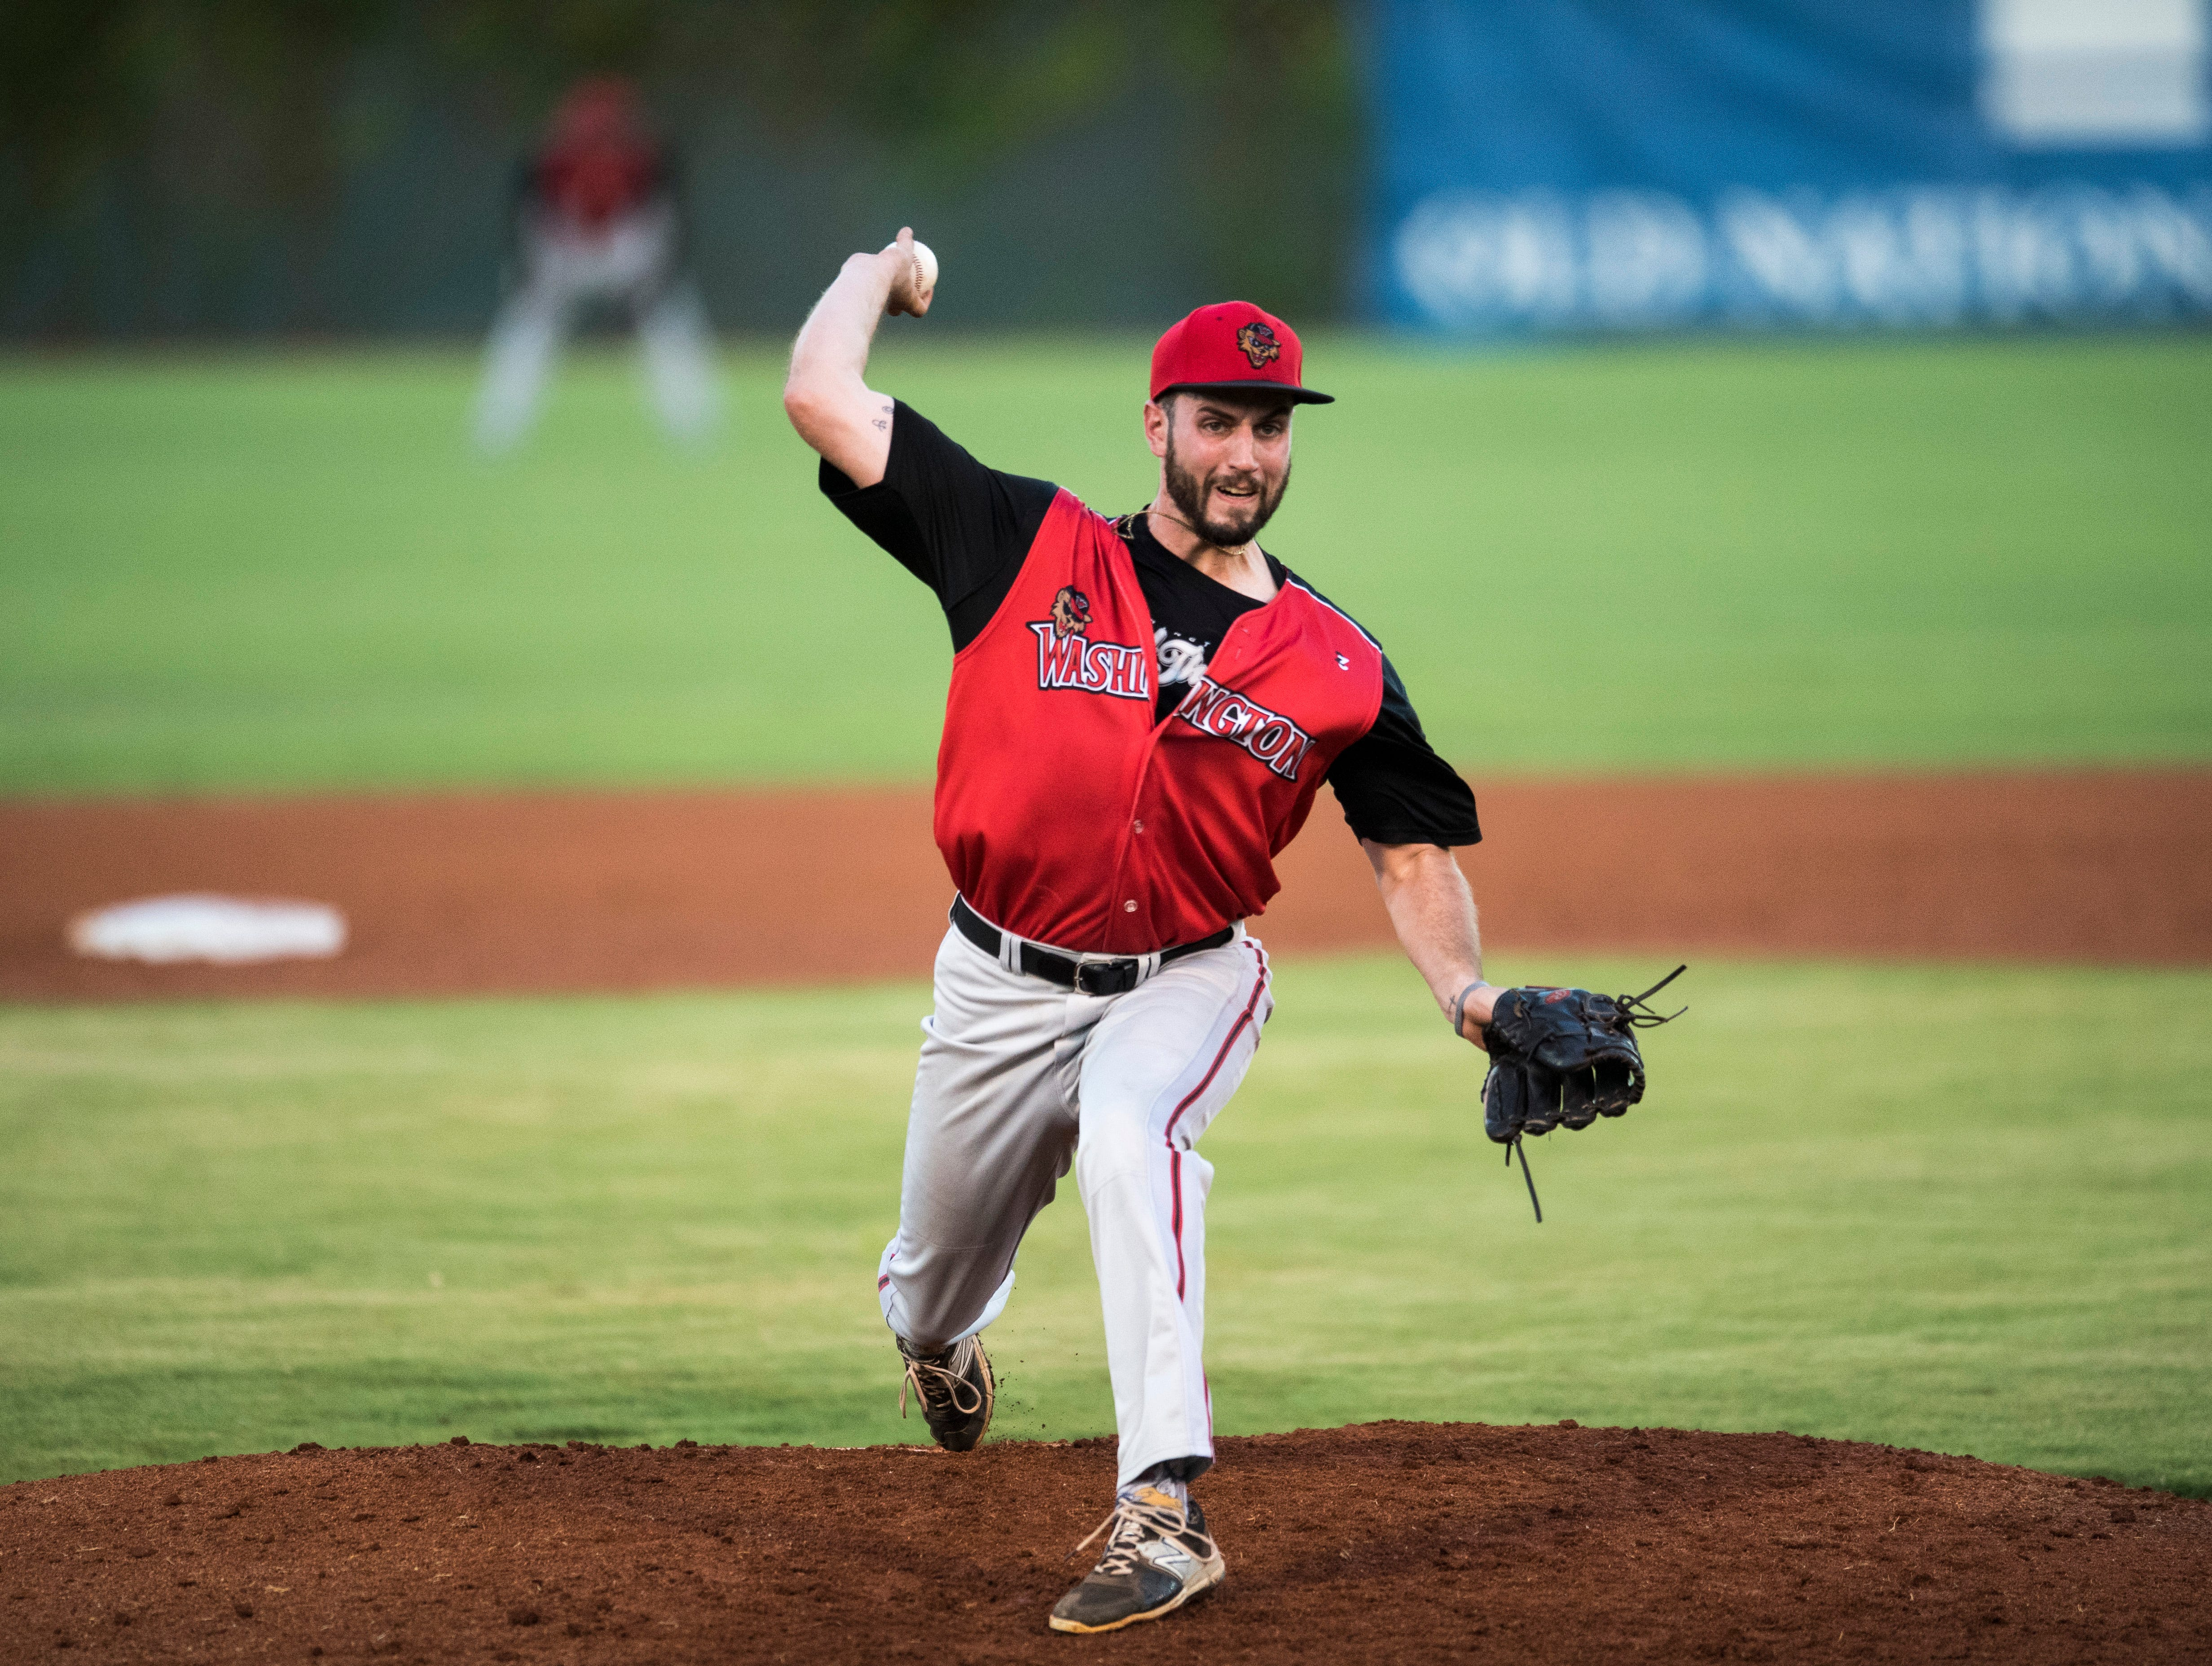 Washington's Chase Cunningham (20) pitches in the second inning during game two of the Frontier League Division Series at Bosse Field against the Evansville Otters Wednesday, September 5, 2018.